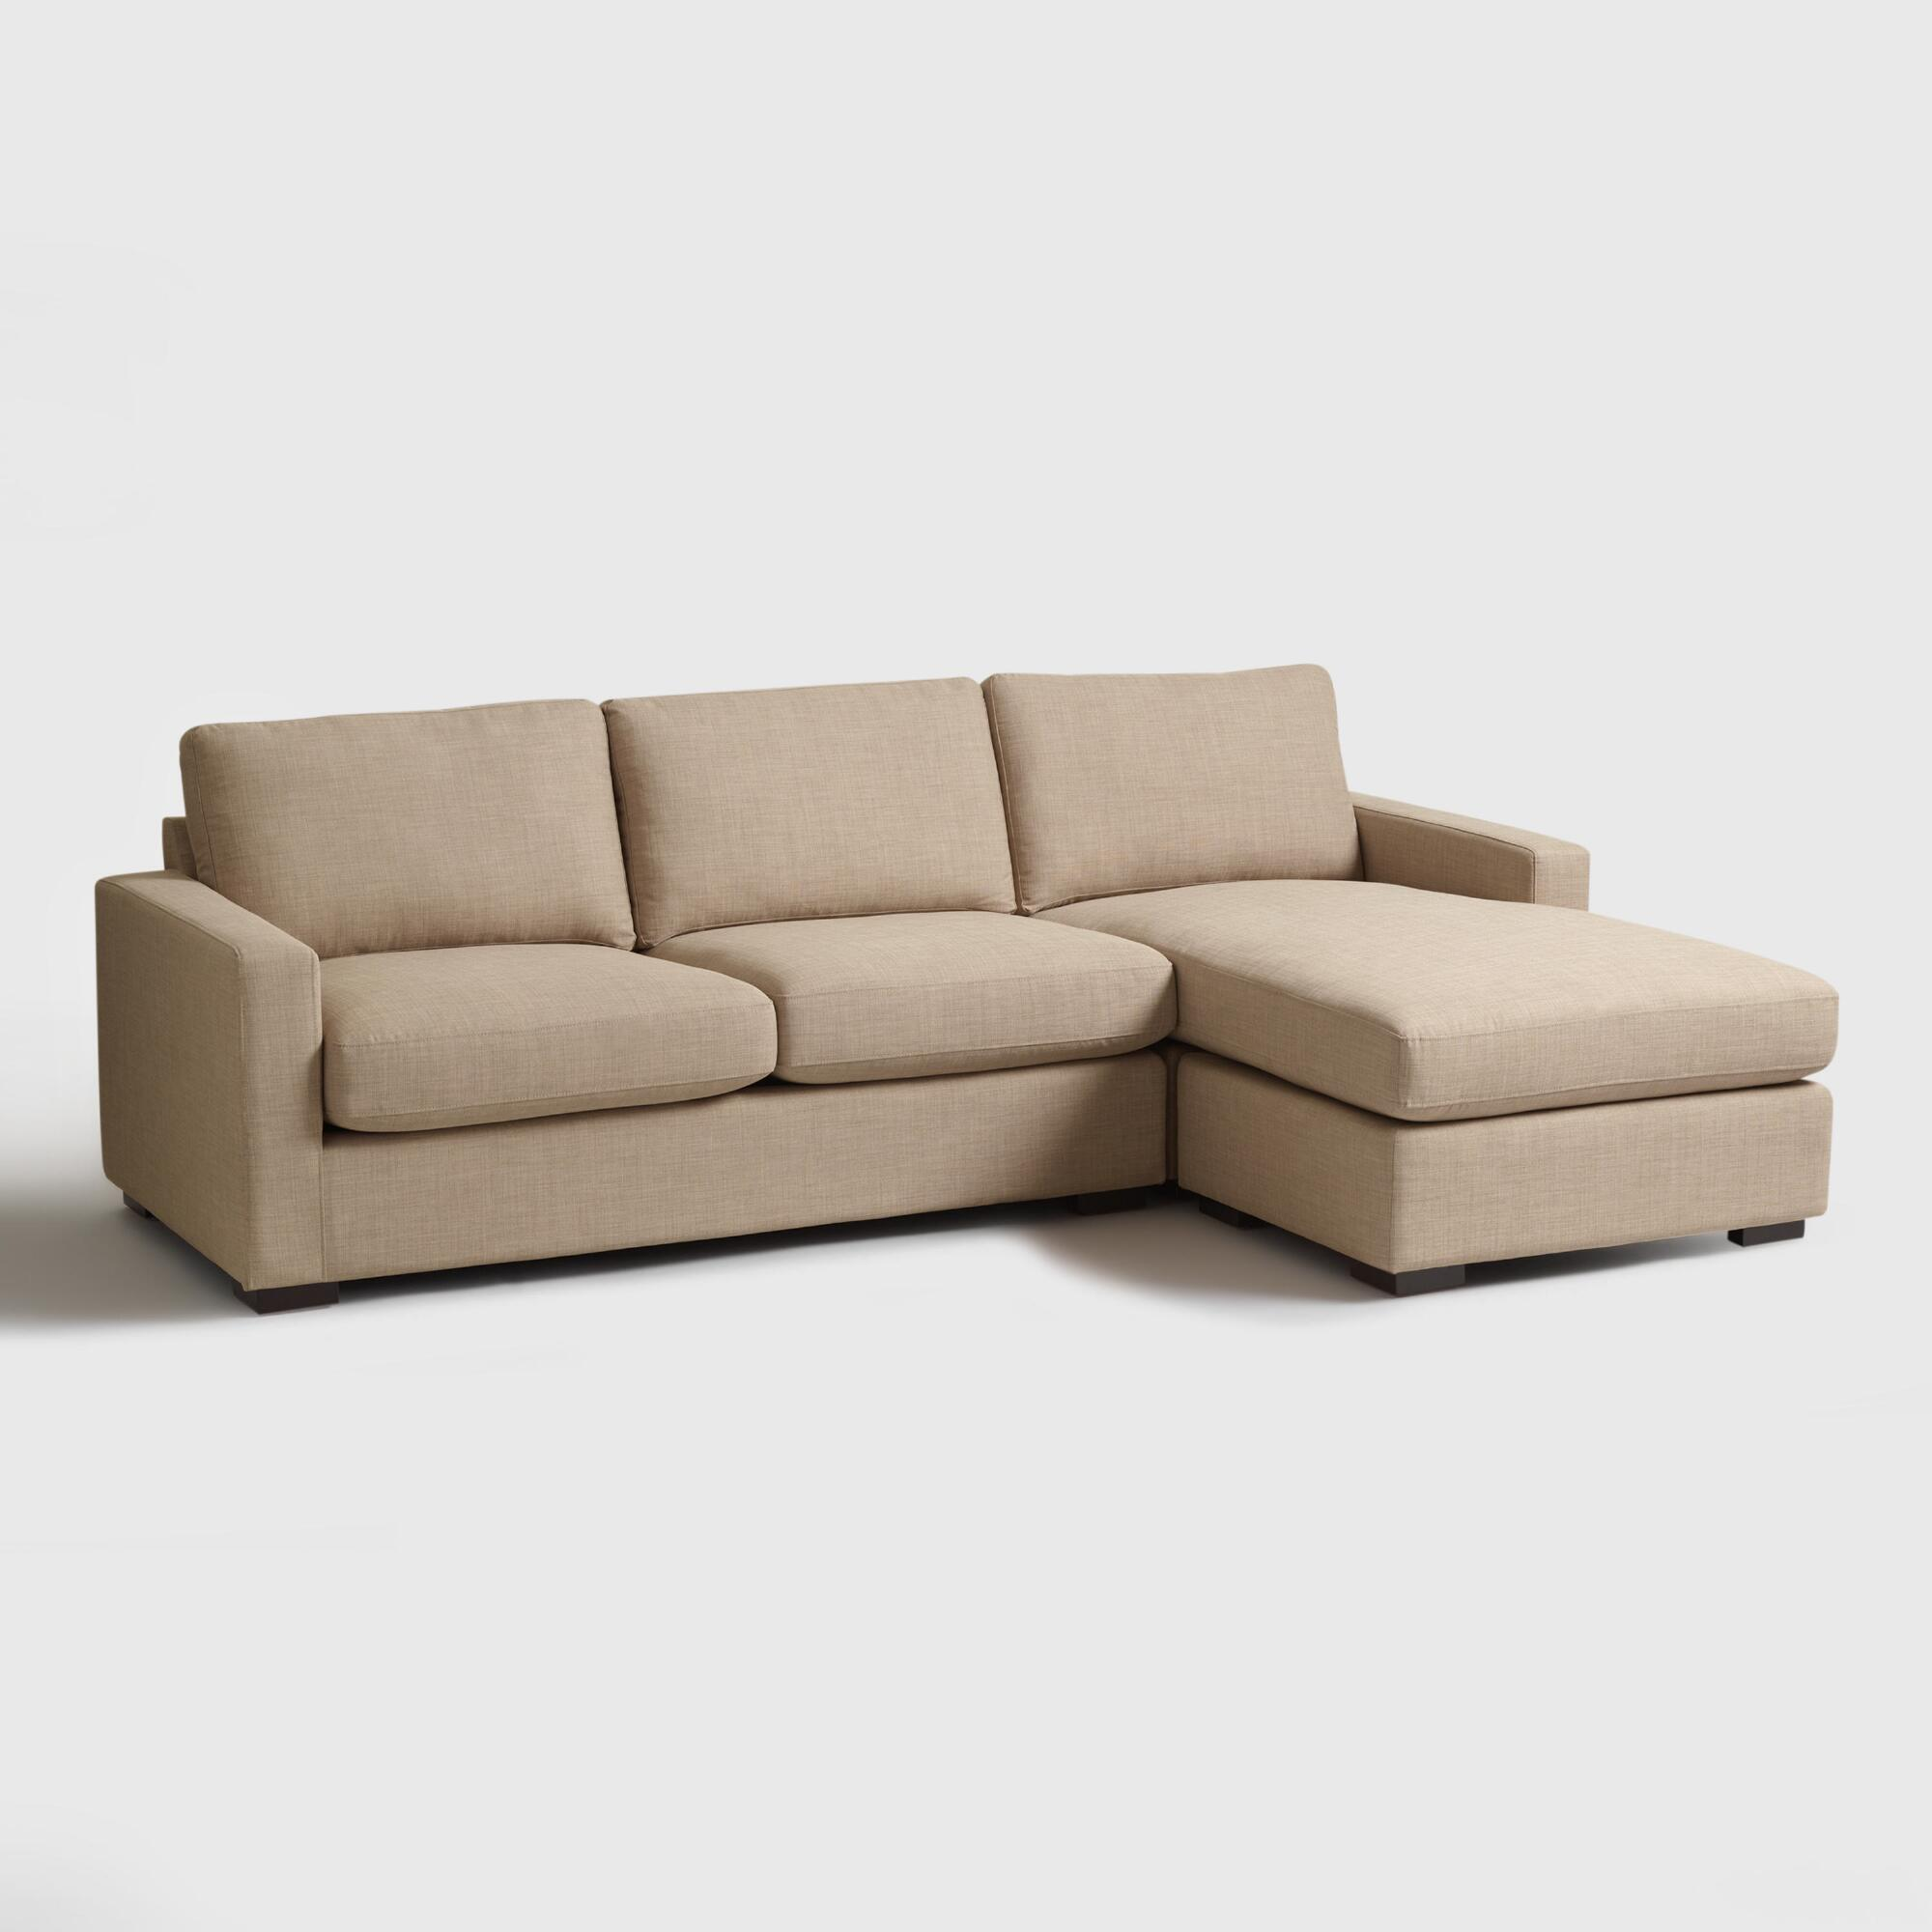 Daily deals sunday march 12 2017 for Brighton taupe 3 piece chaise and sofa set